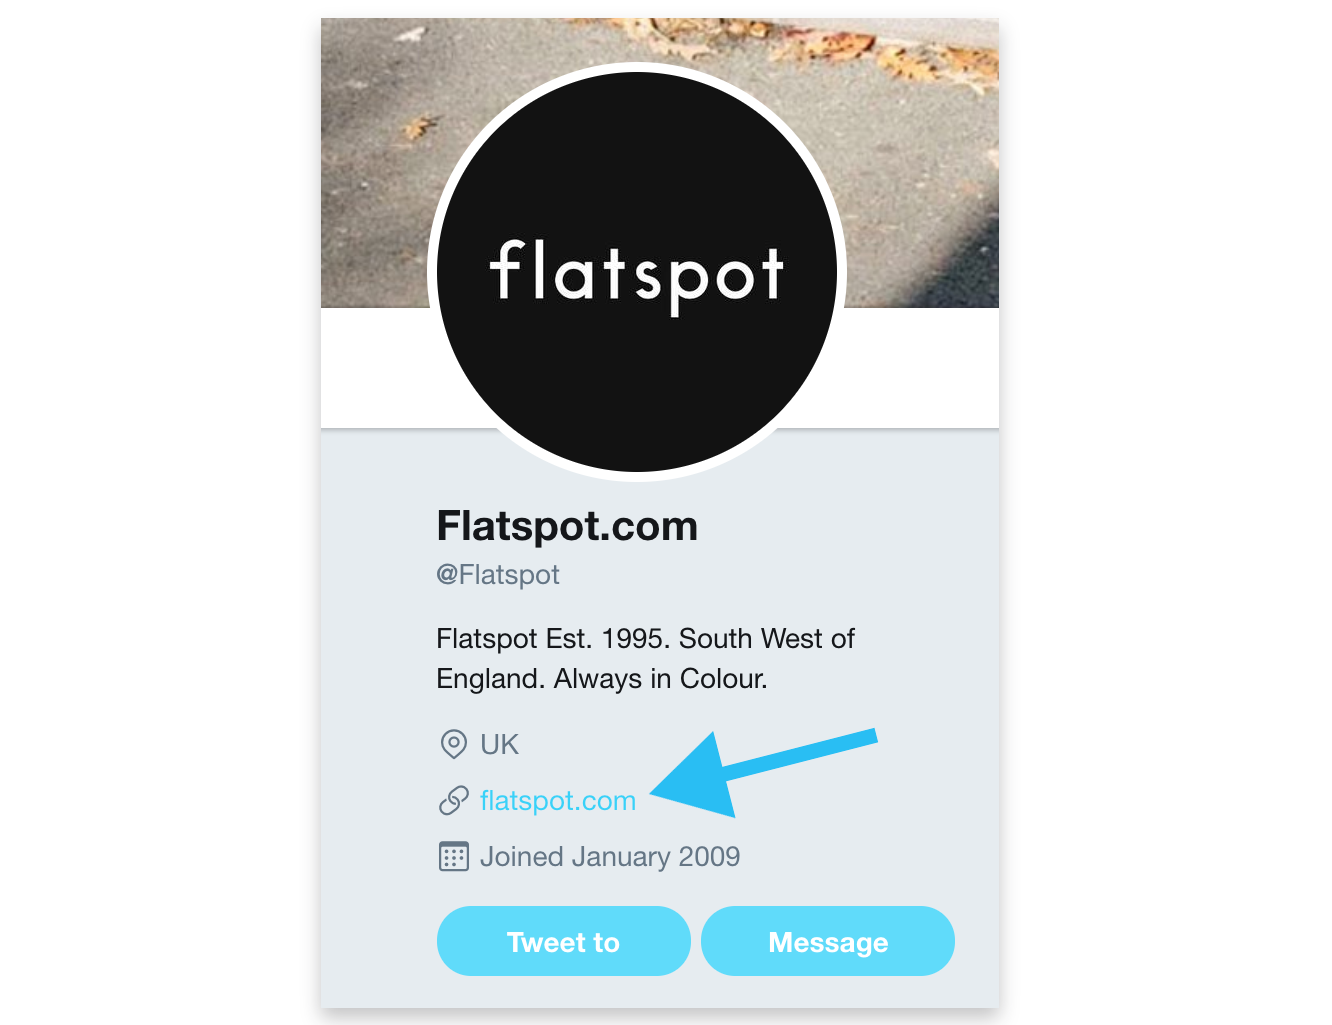 Screenshot showing flatspot